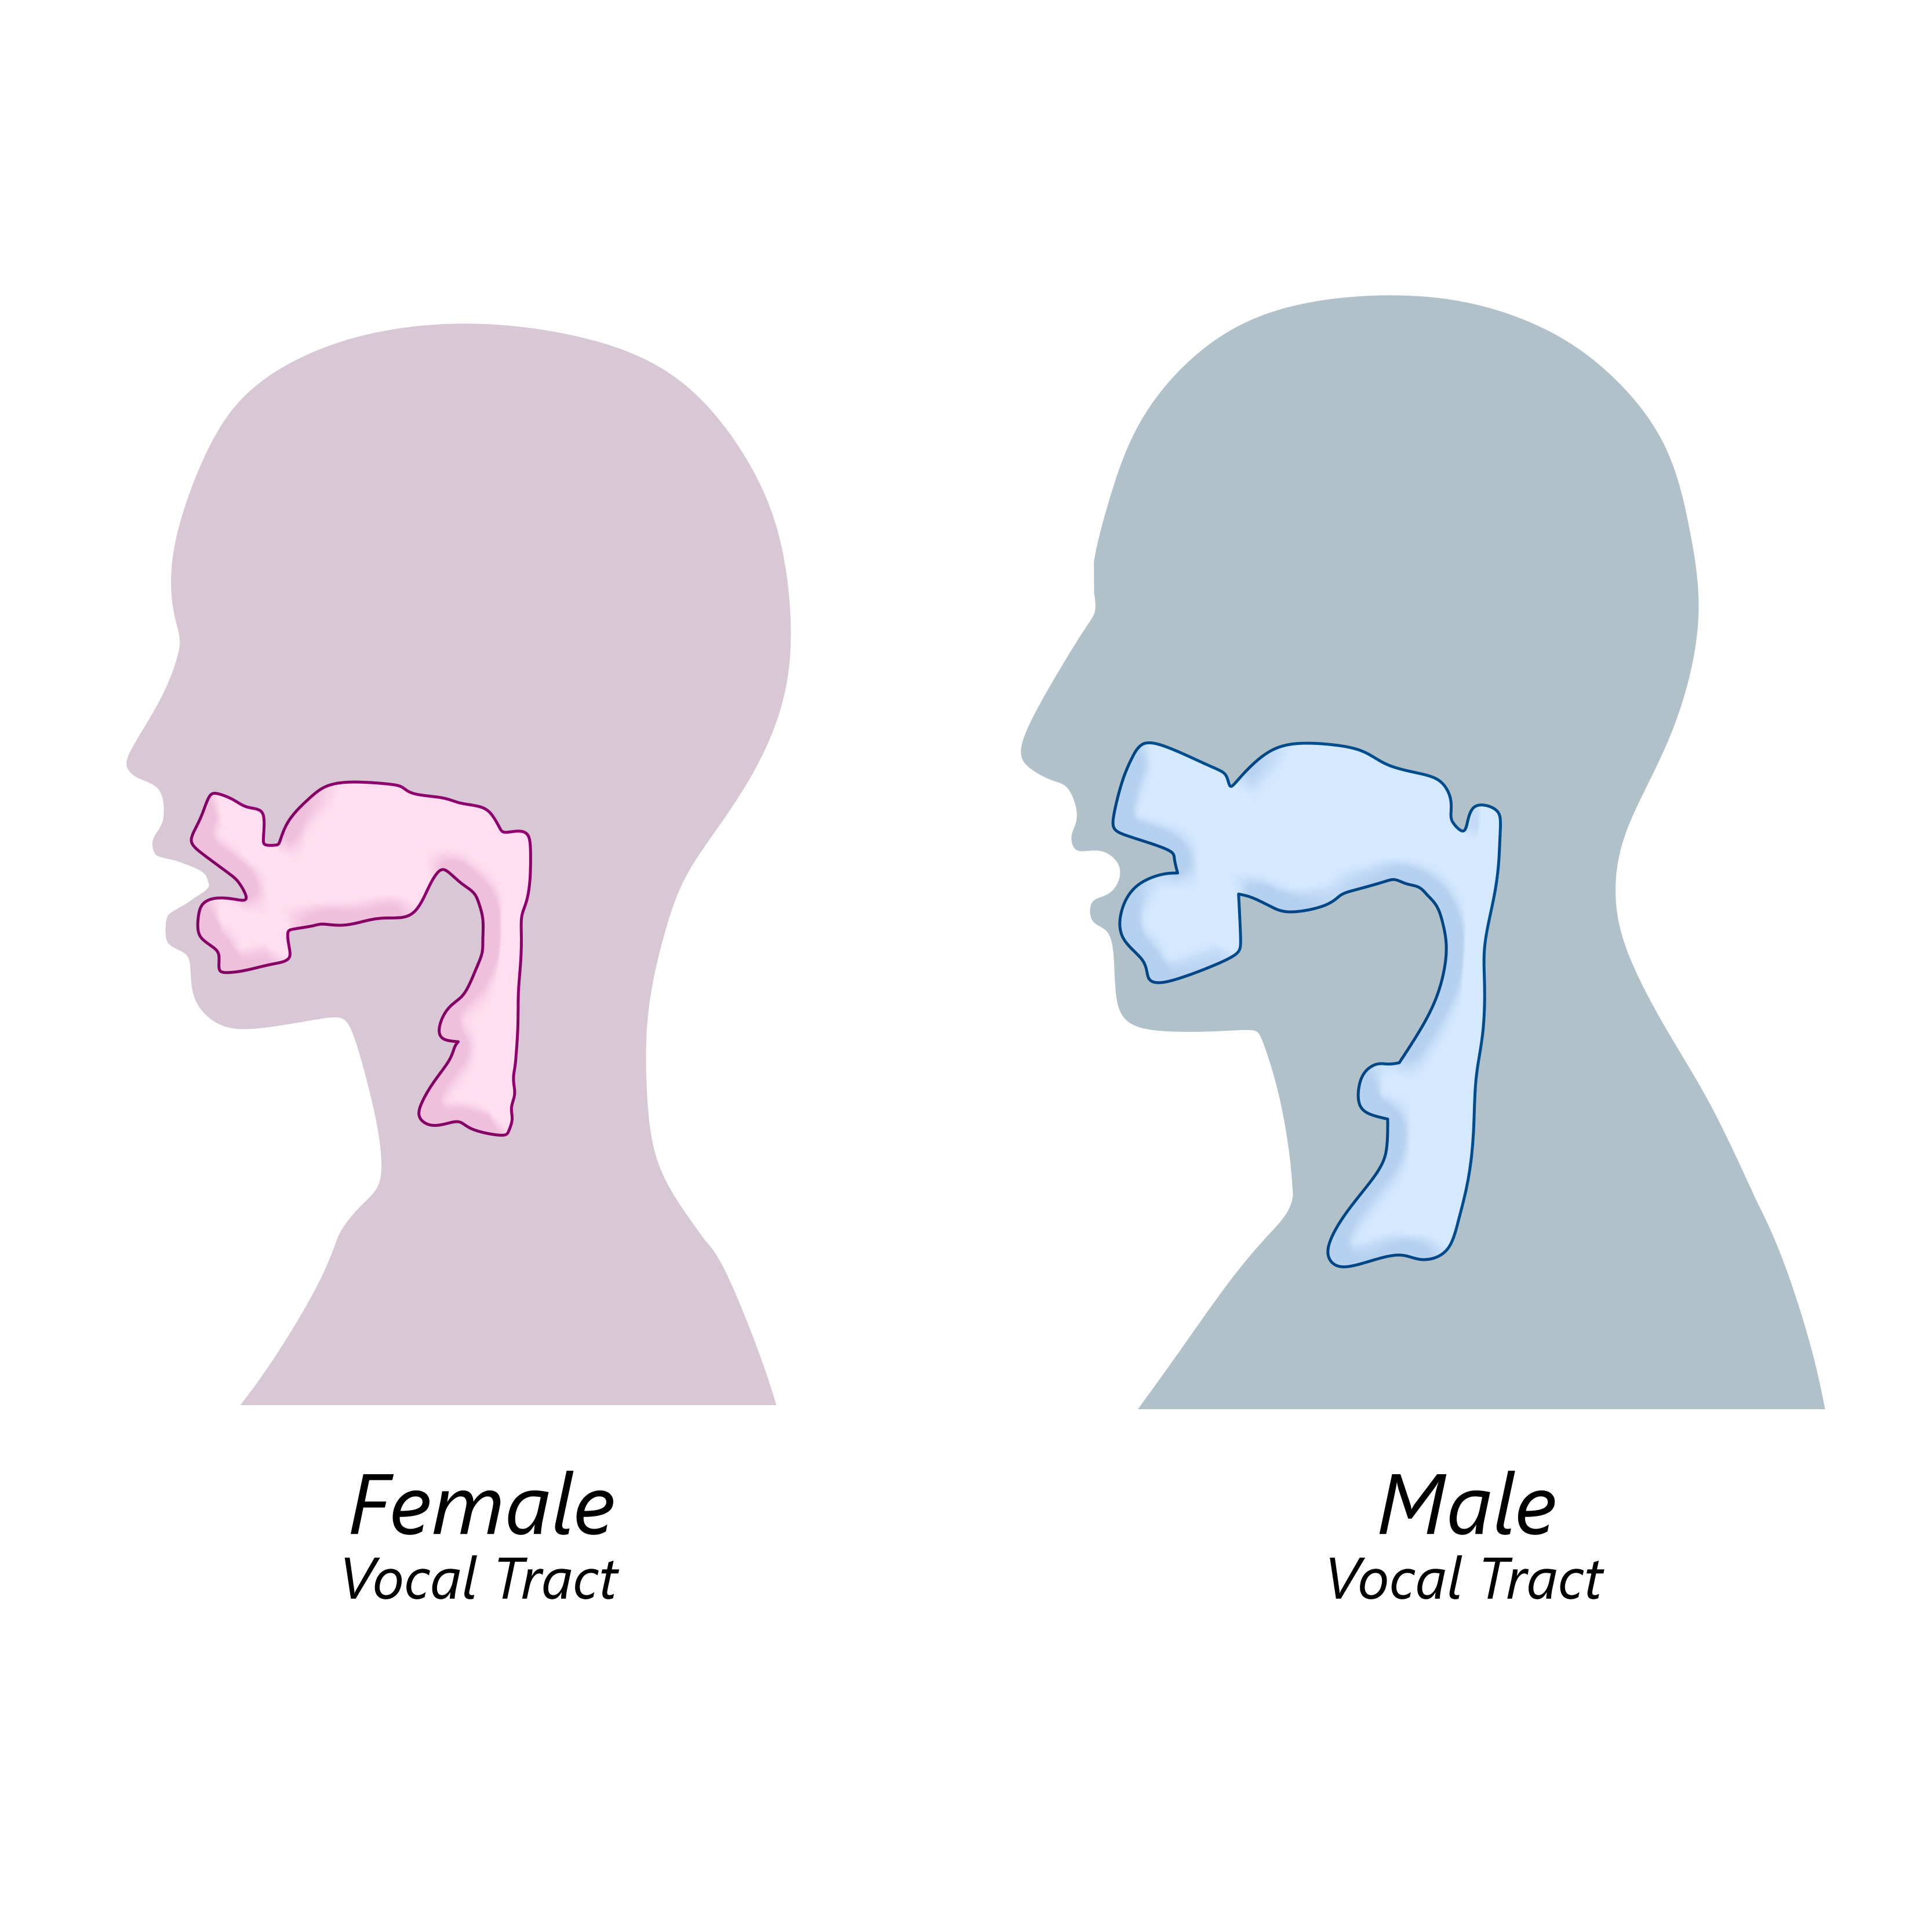 The Female Vocal Tract vs The Male Vocal Tract